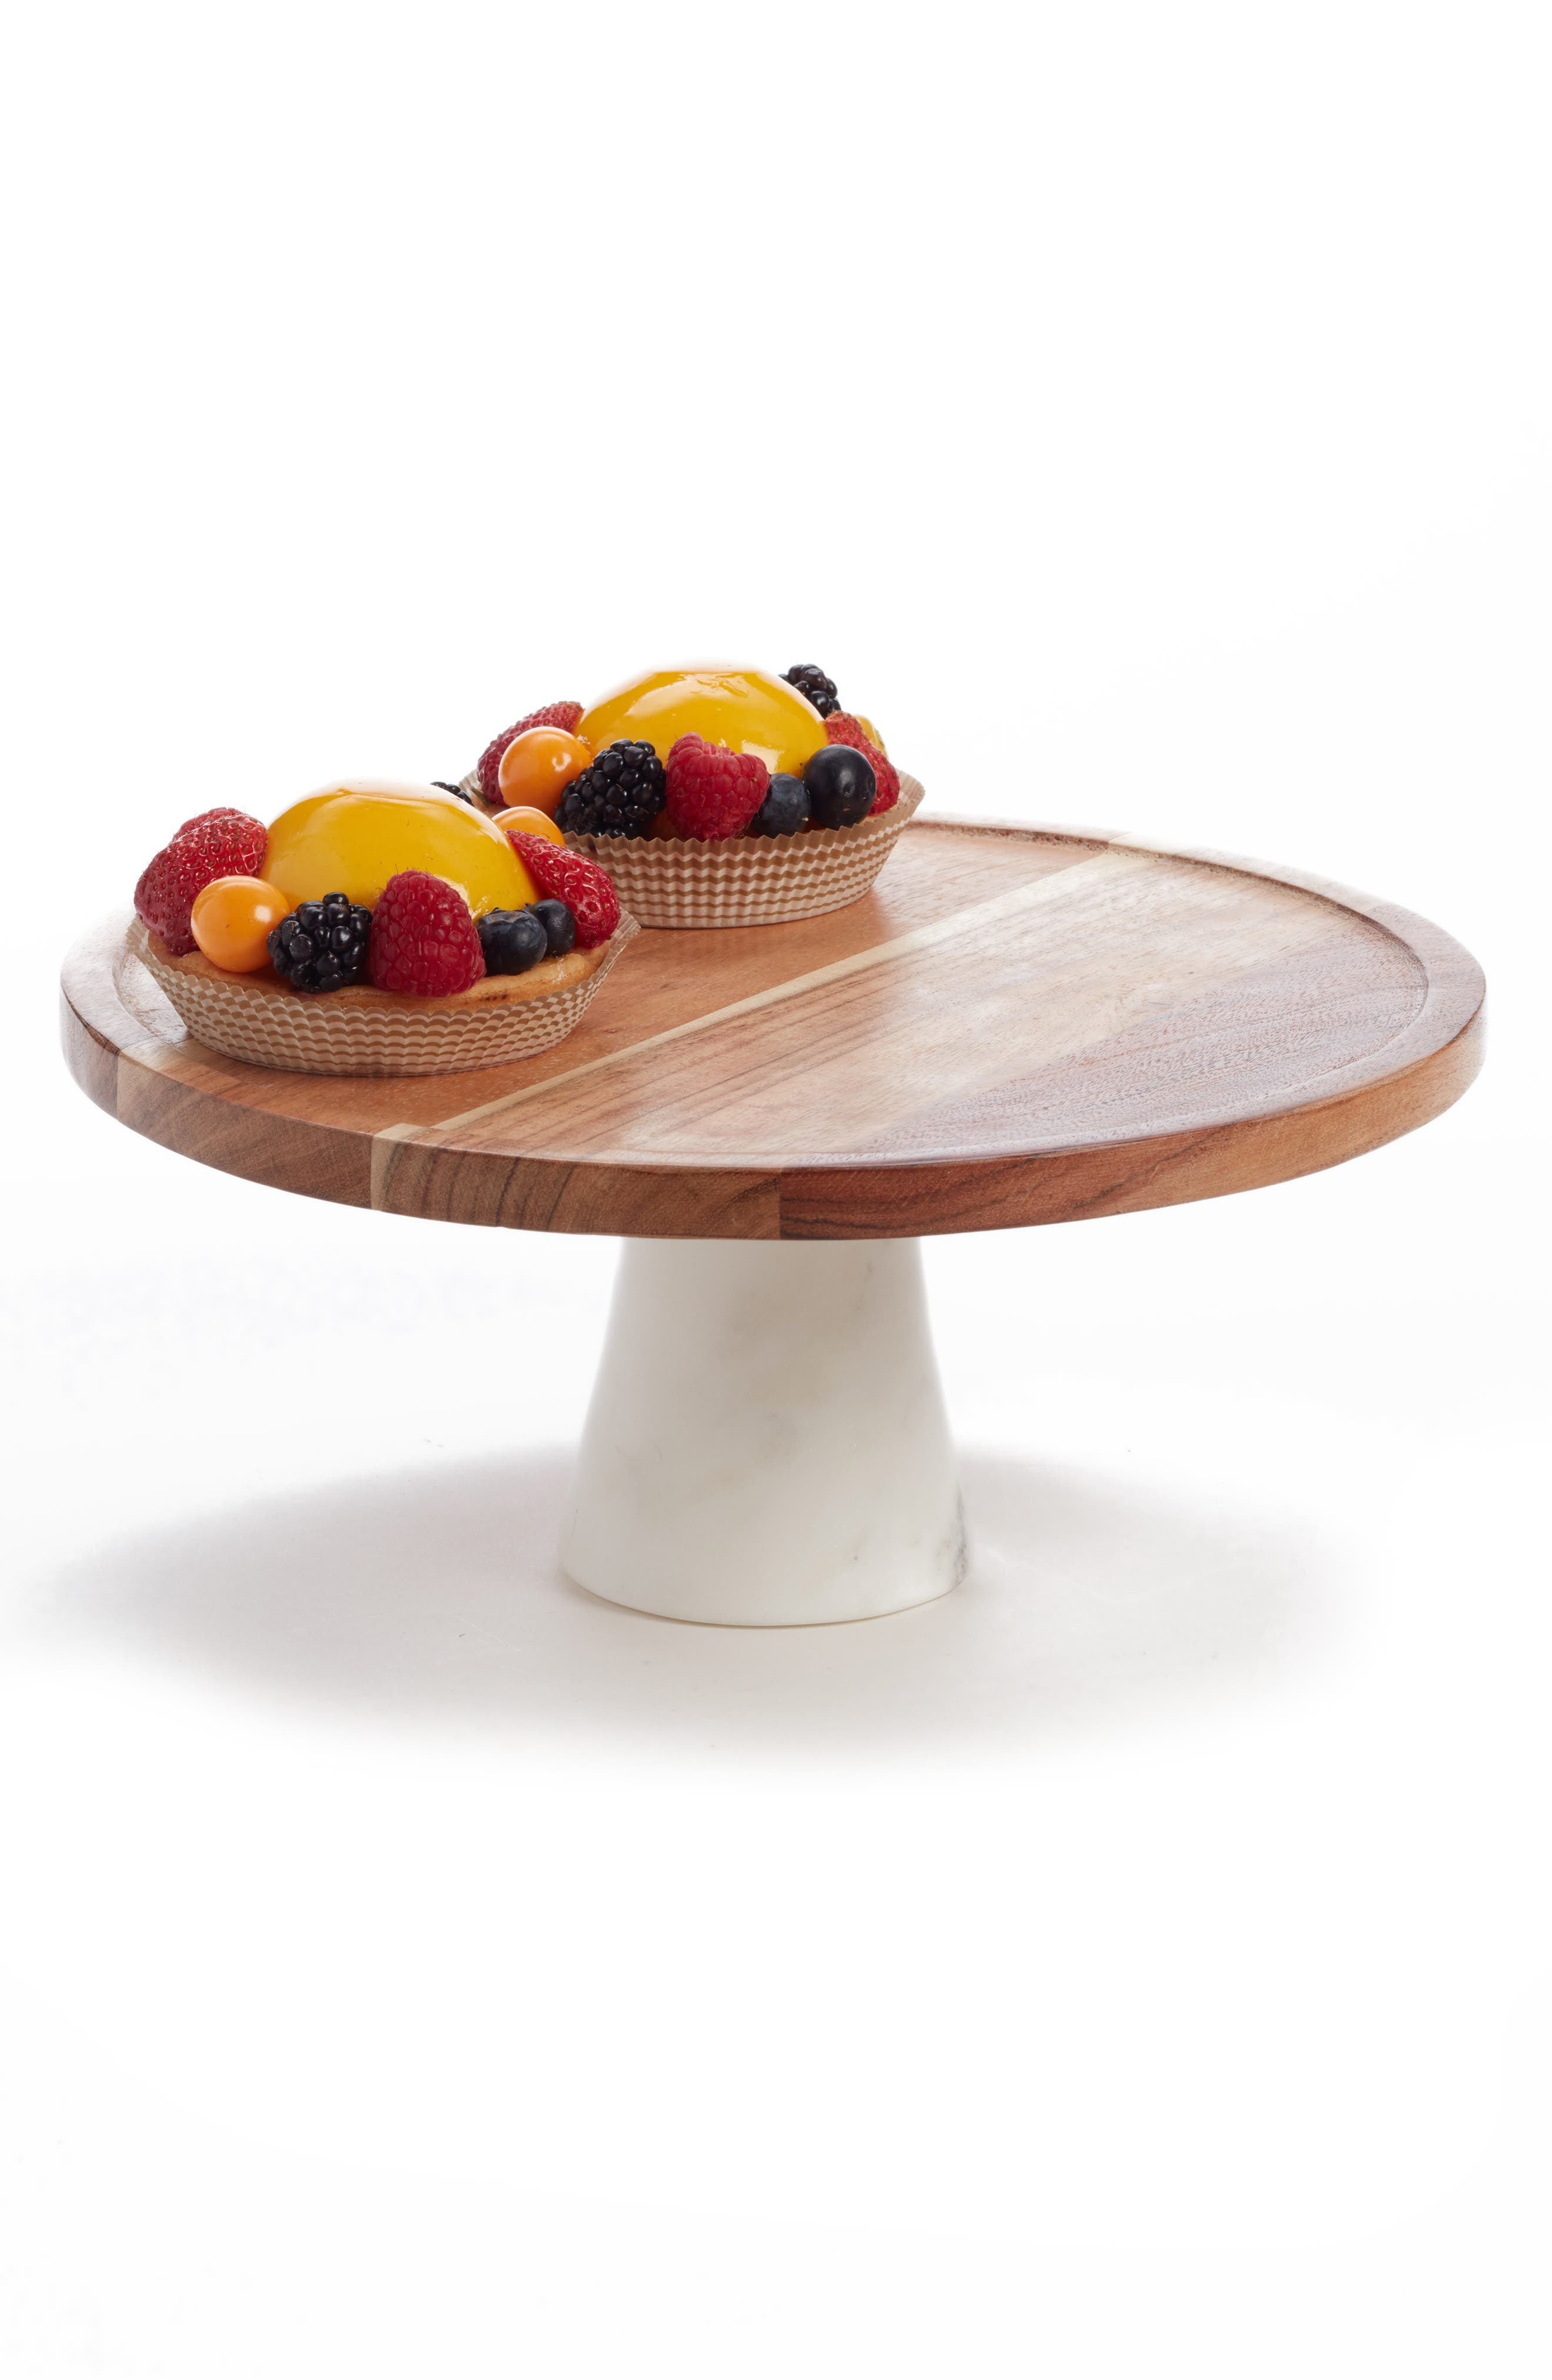 Wood & Marble Cake Stand,                             Main thumbnail 1, color,                             200